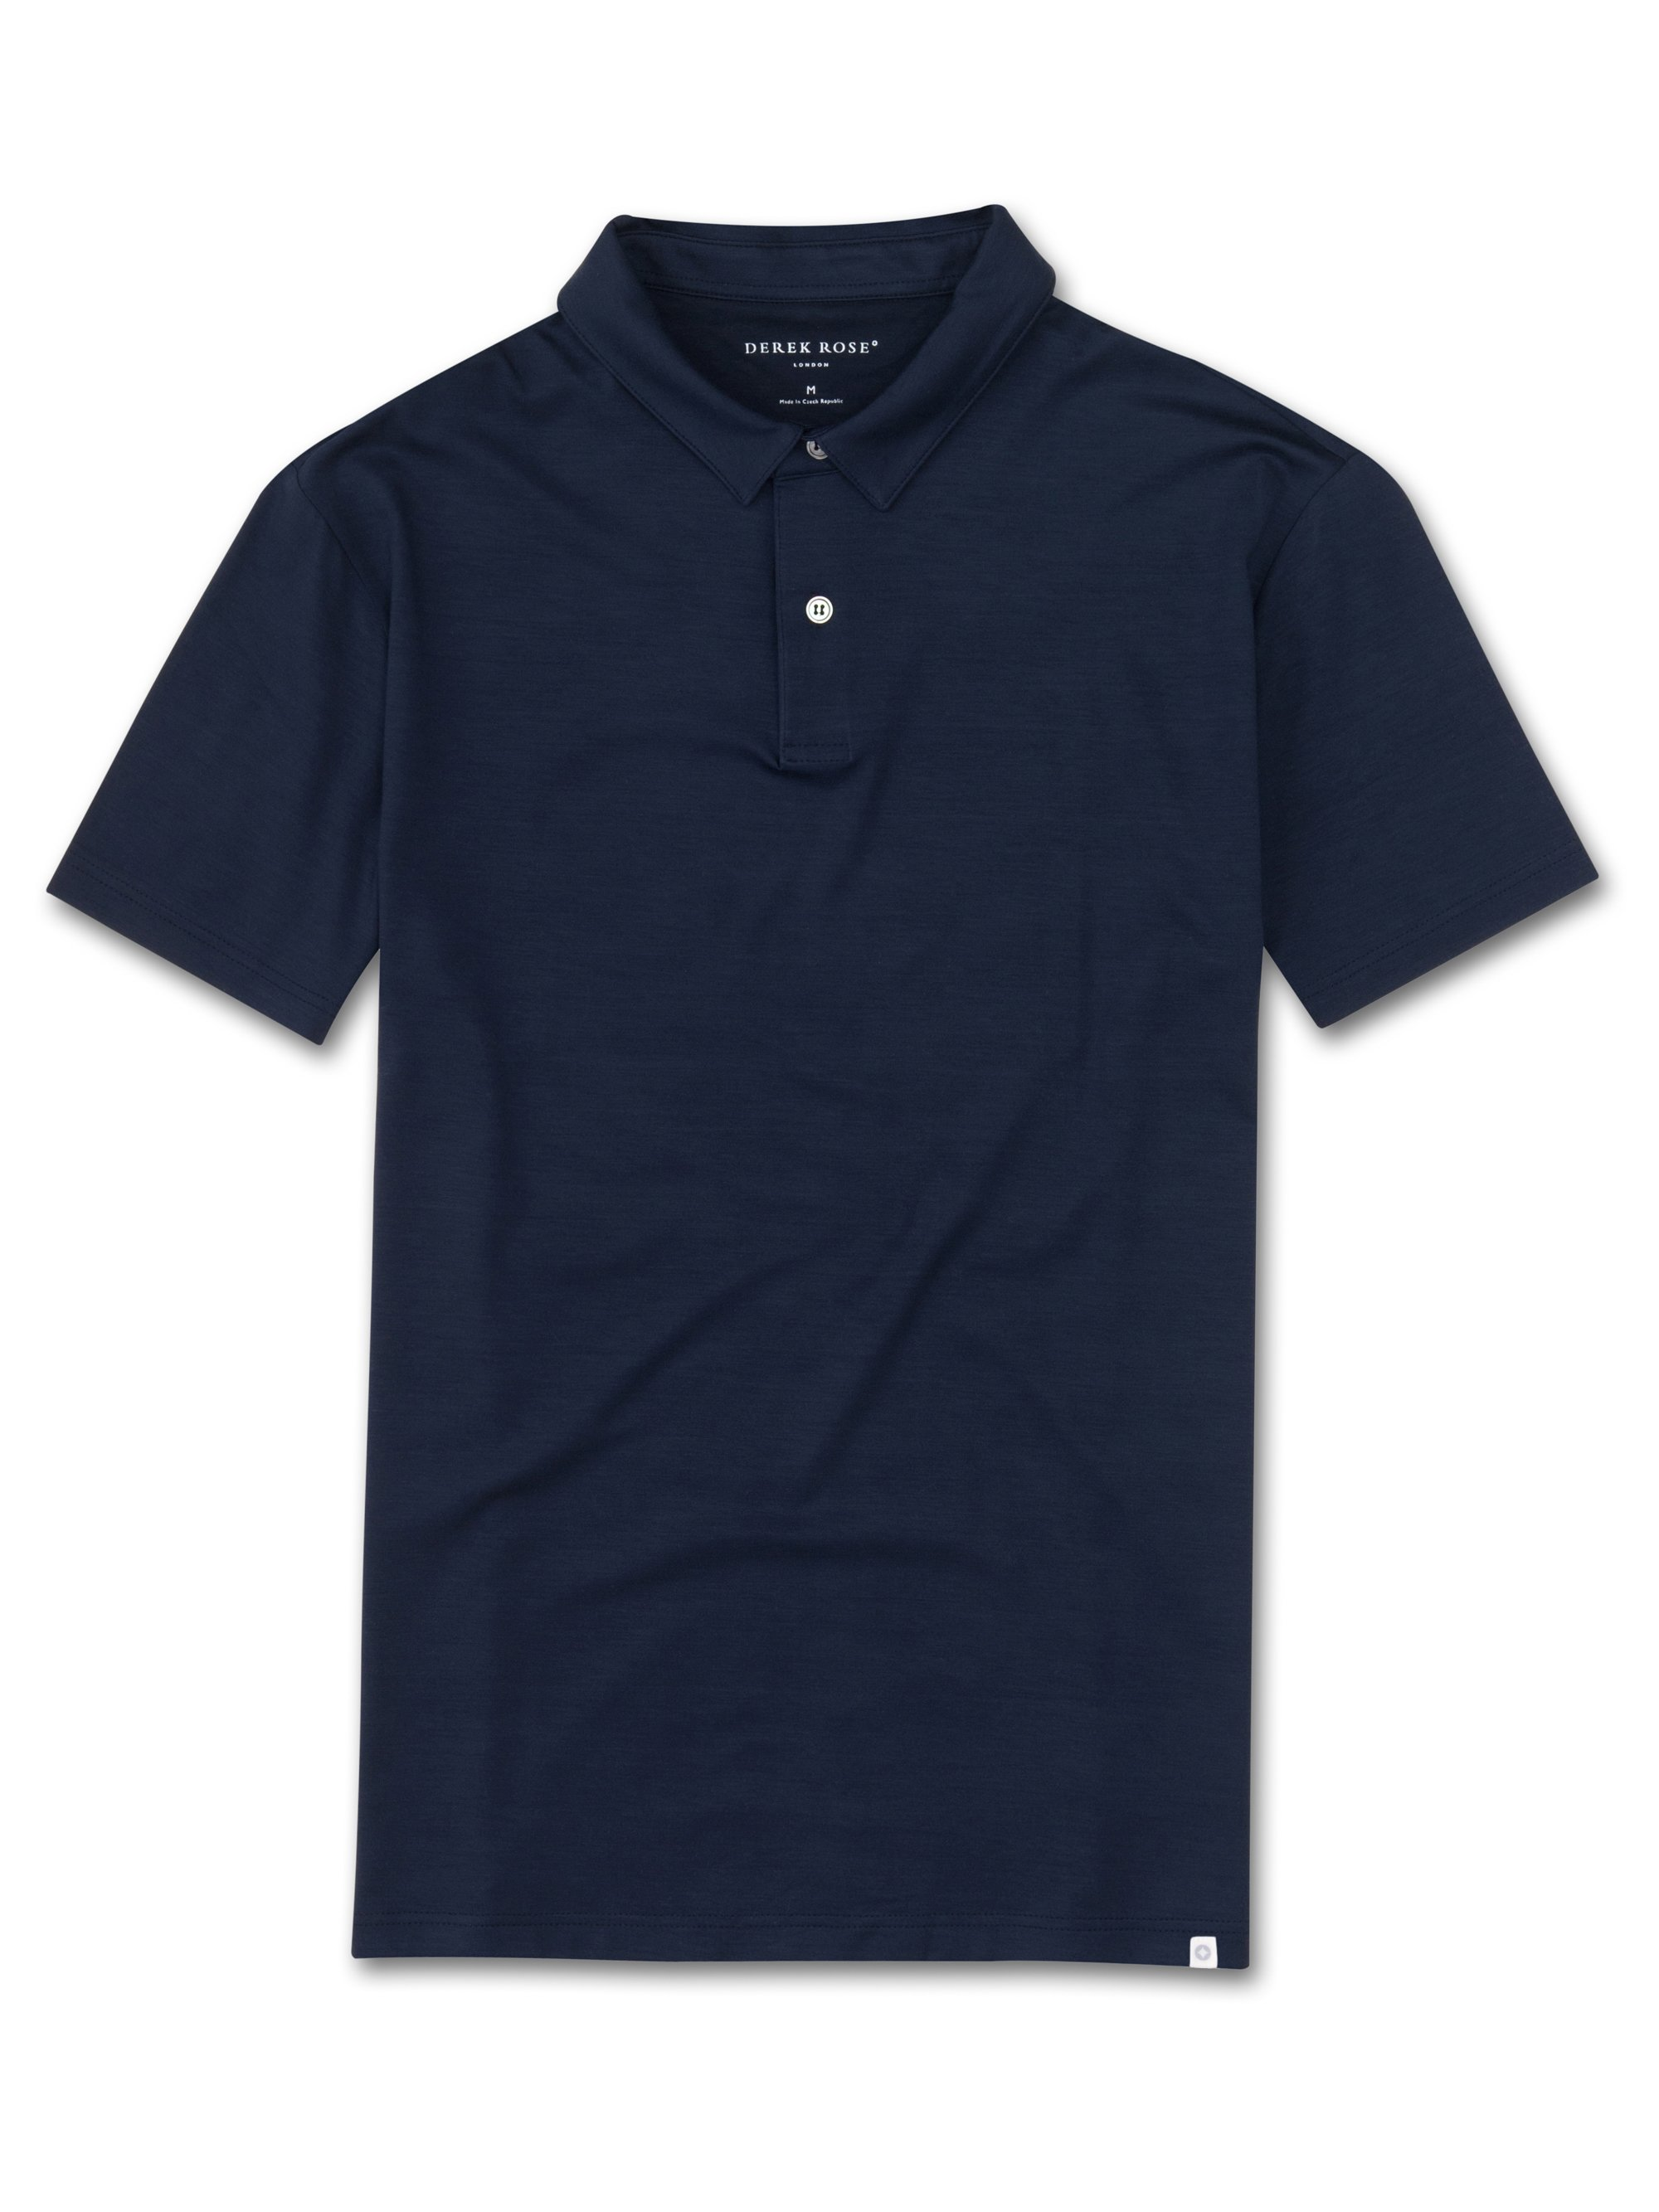 Men's Short Sleeve Polo Shirt Basel Micro Modal Stretch Navy